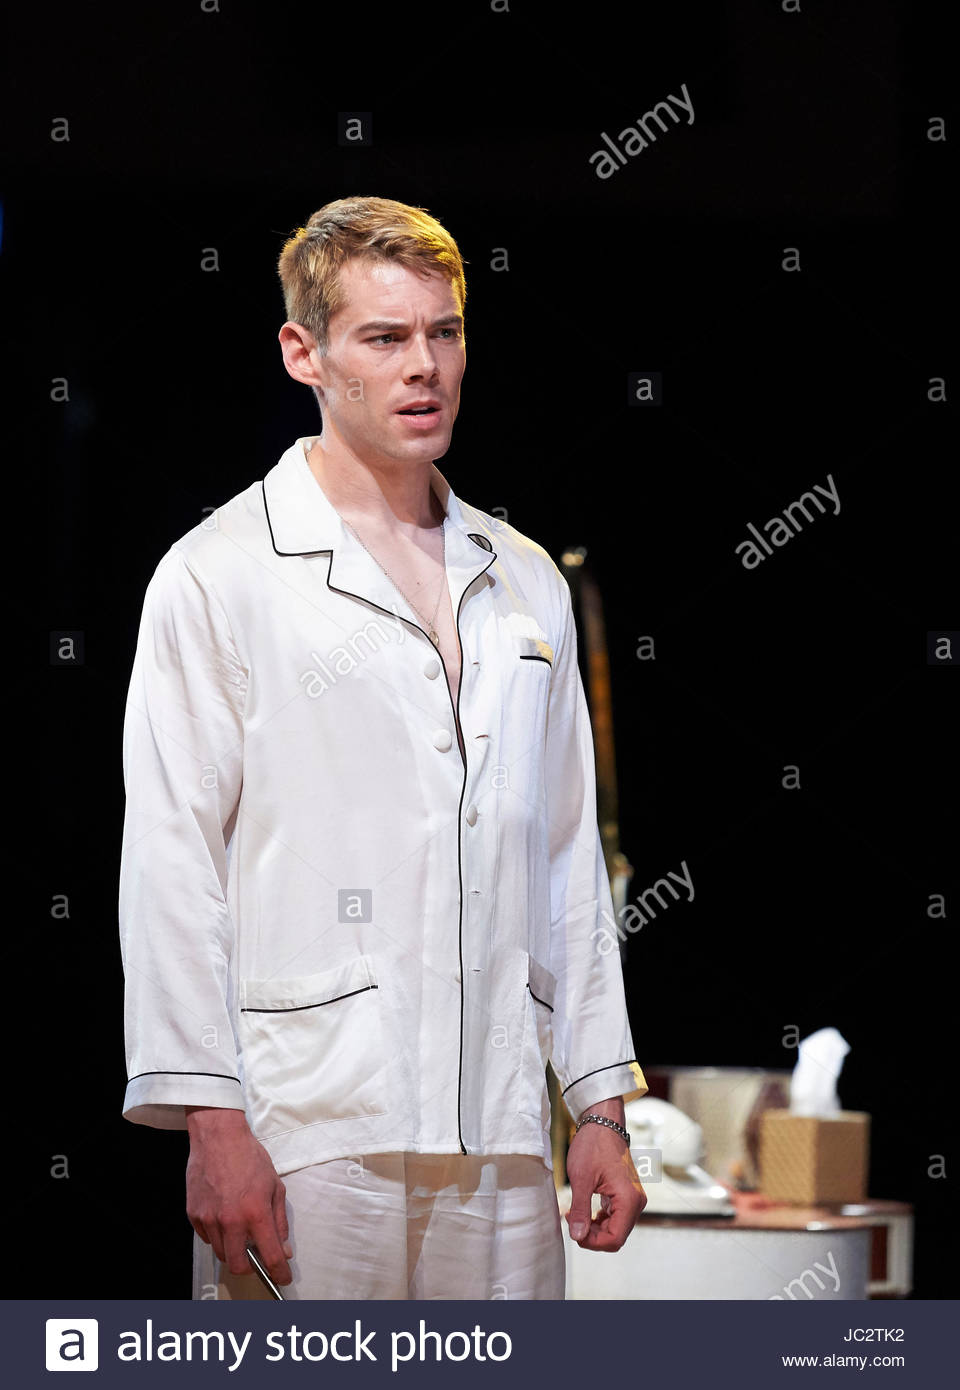 Sweet Bird Of Youth by Tennessee Williams, directed by Jonathan Kent. With Brian J smith as Chance Wayne. Opens - Stock Image